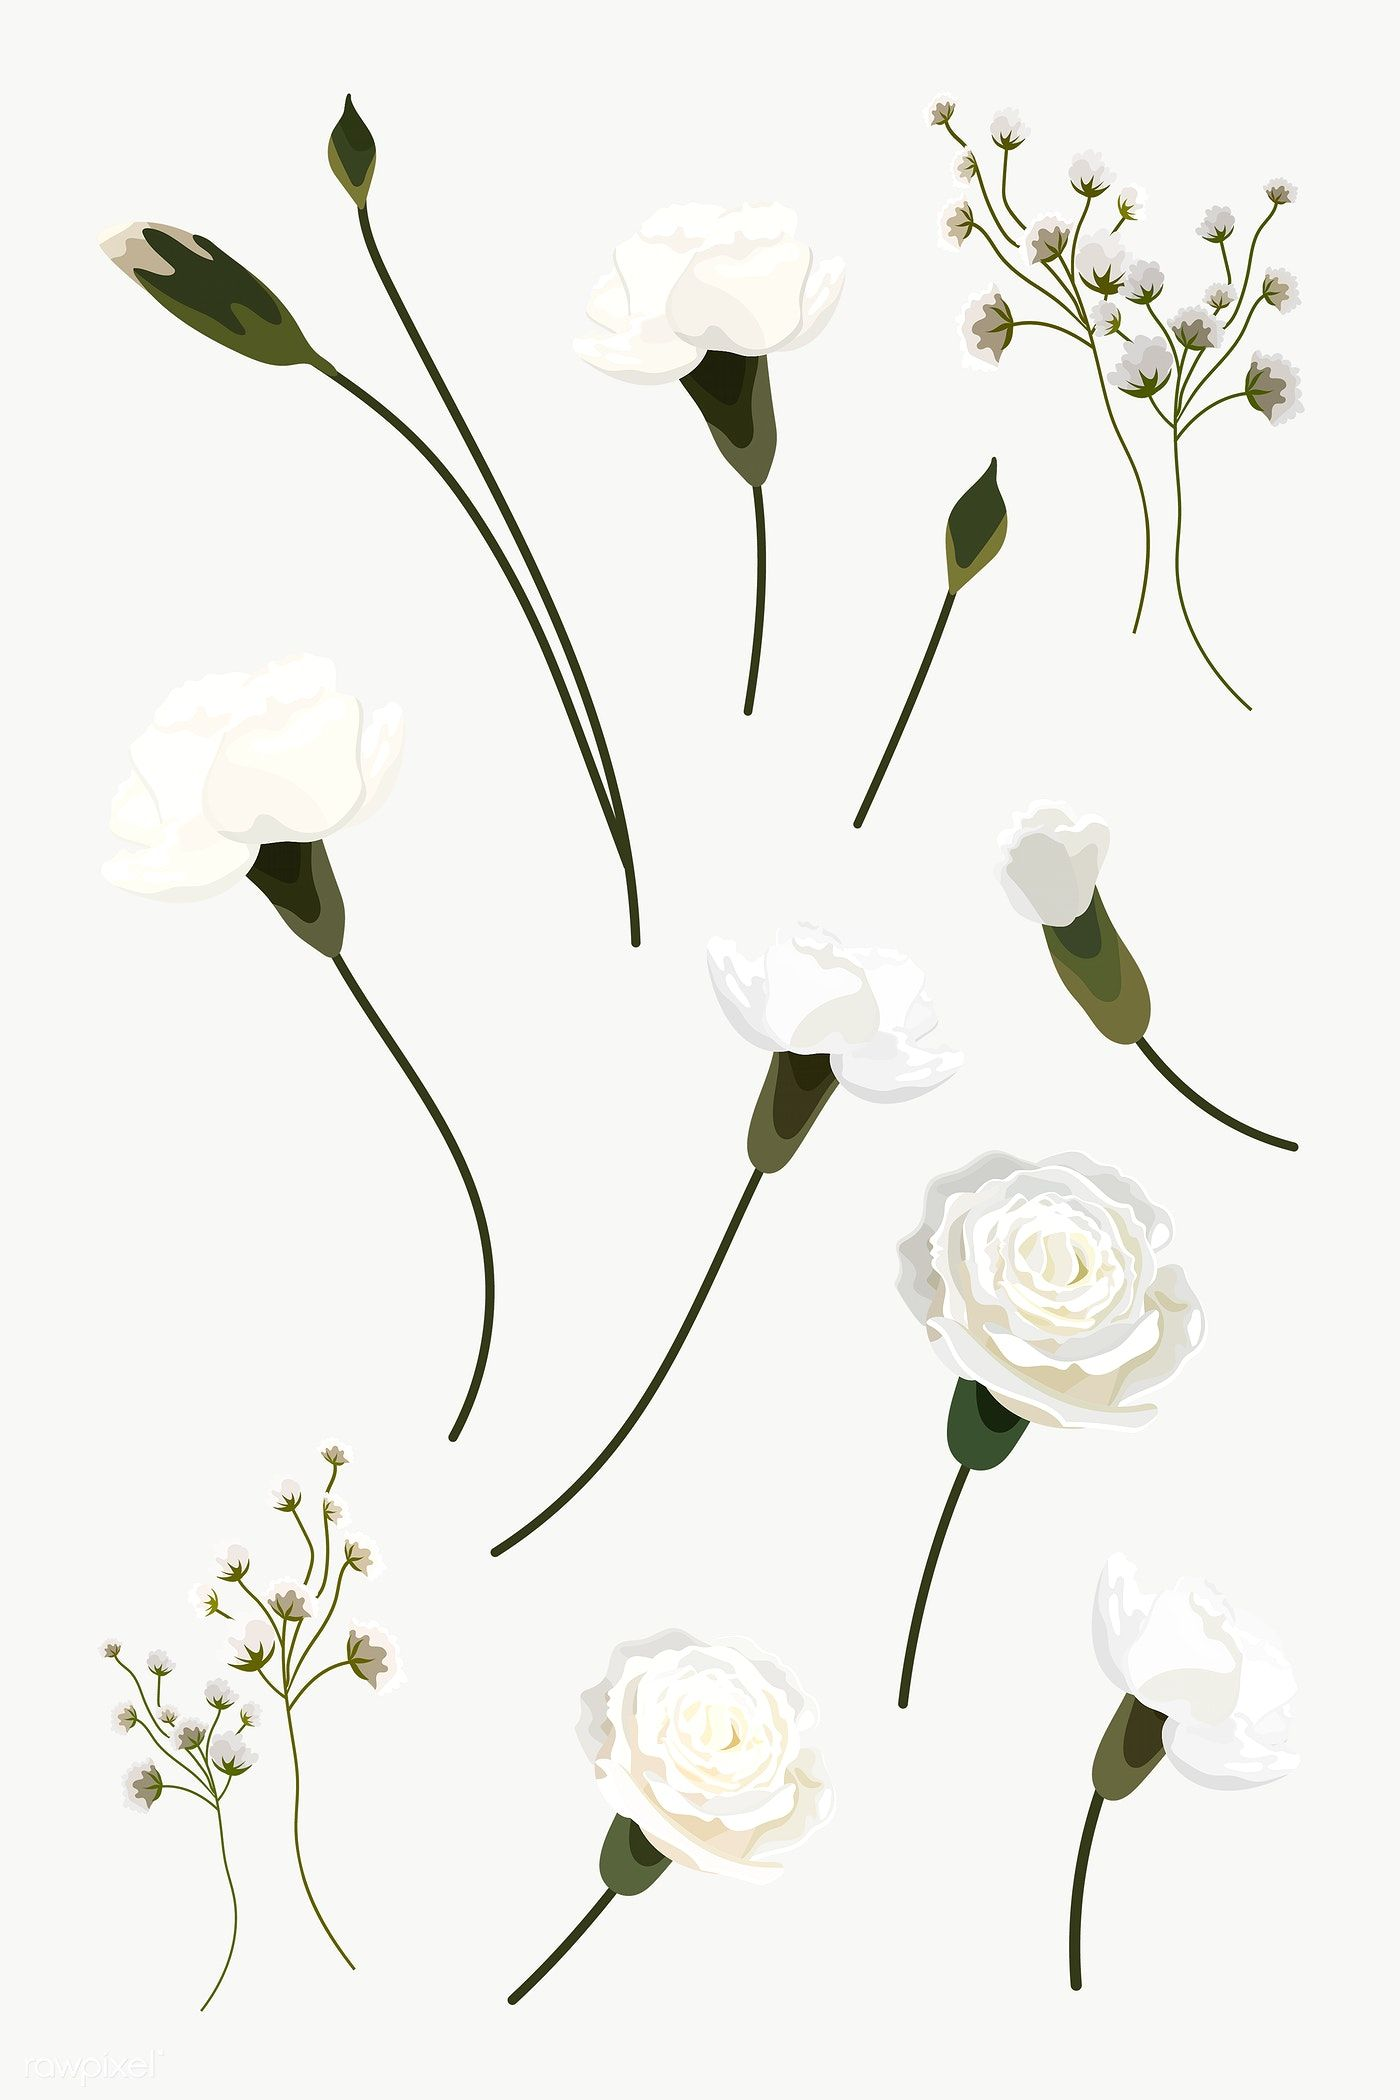 White Flowers Design Resource Collection Transparent Png Free Image By Rawpixel Com Aew In 2020 White Flower Png White Flowers Flower Illustration